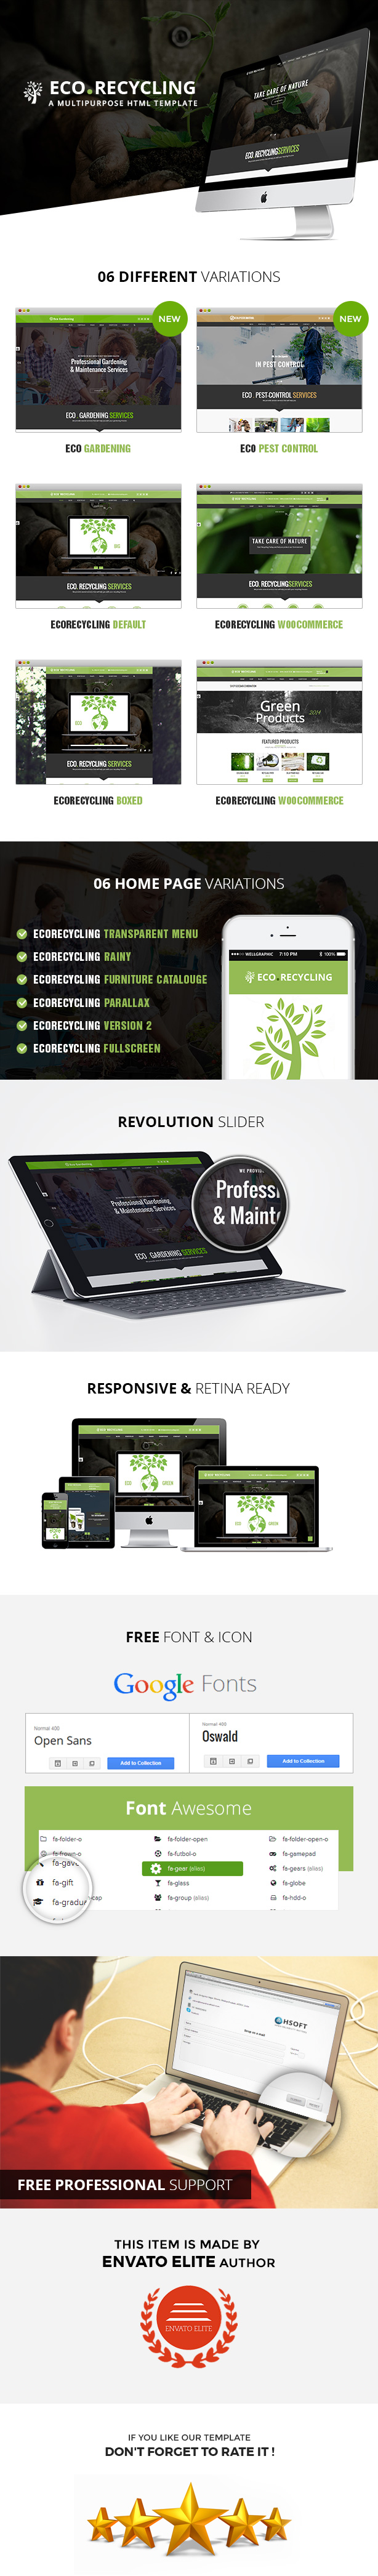 ECO.RECYCLING - A MULTIPURPOSE HTML TEMPLATE